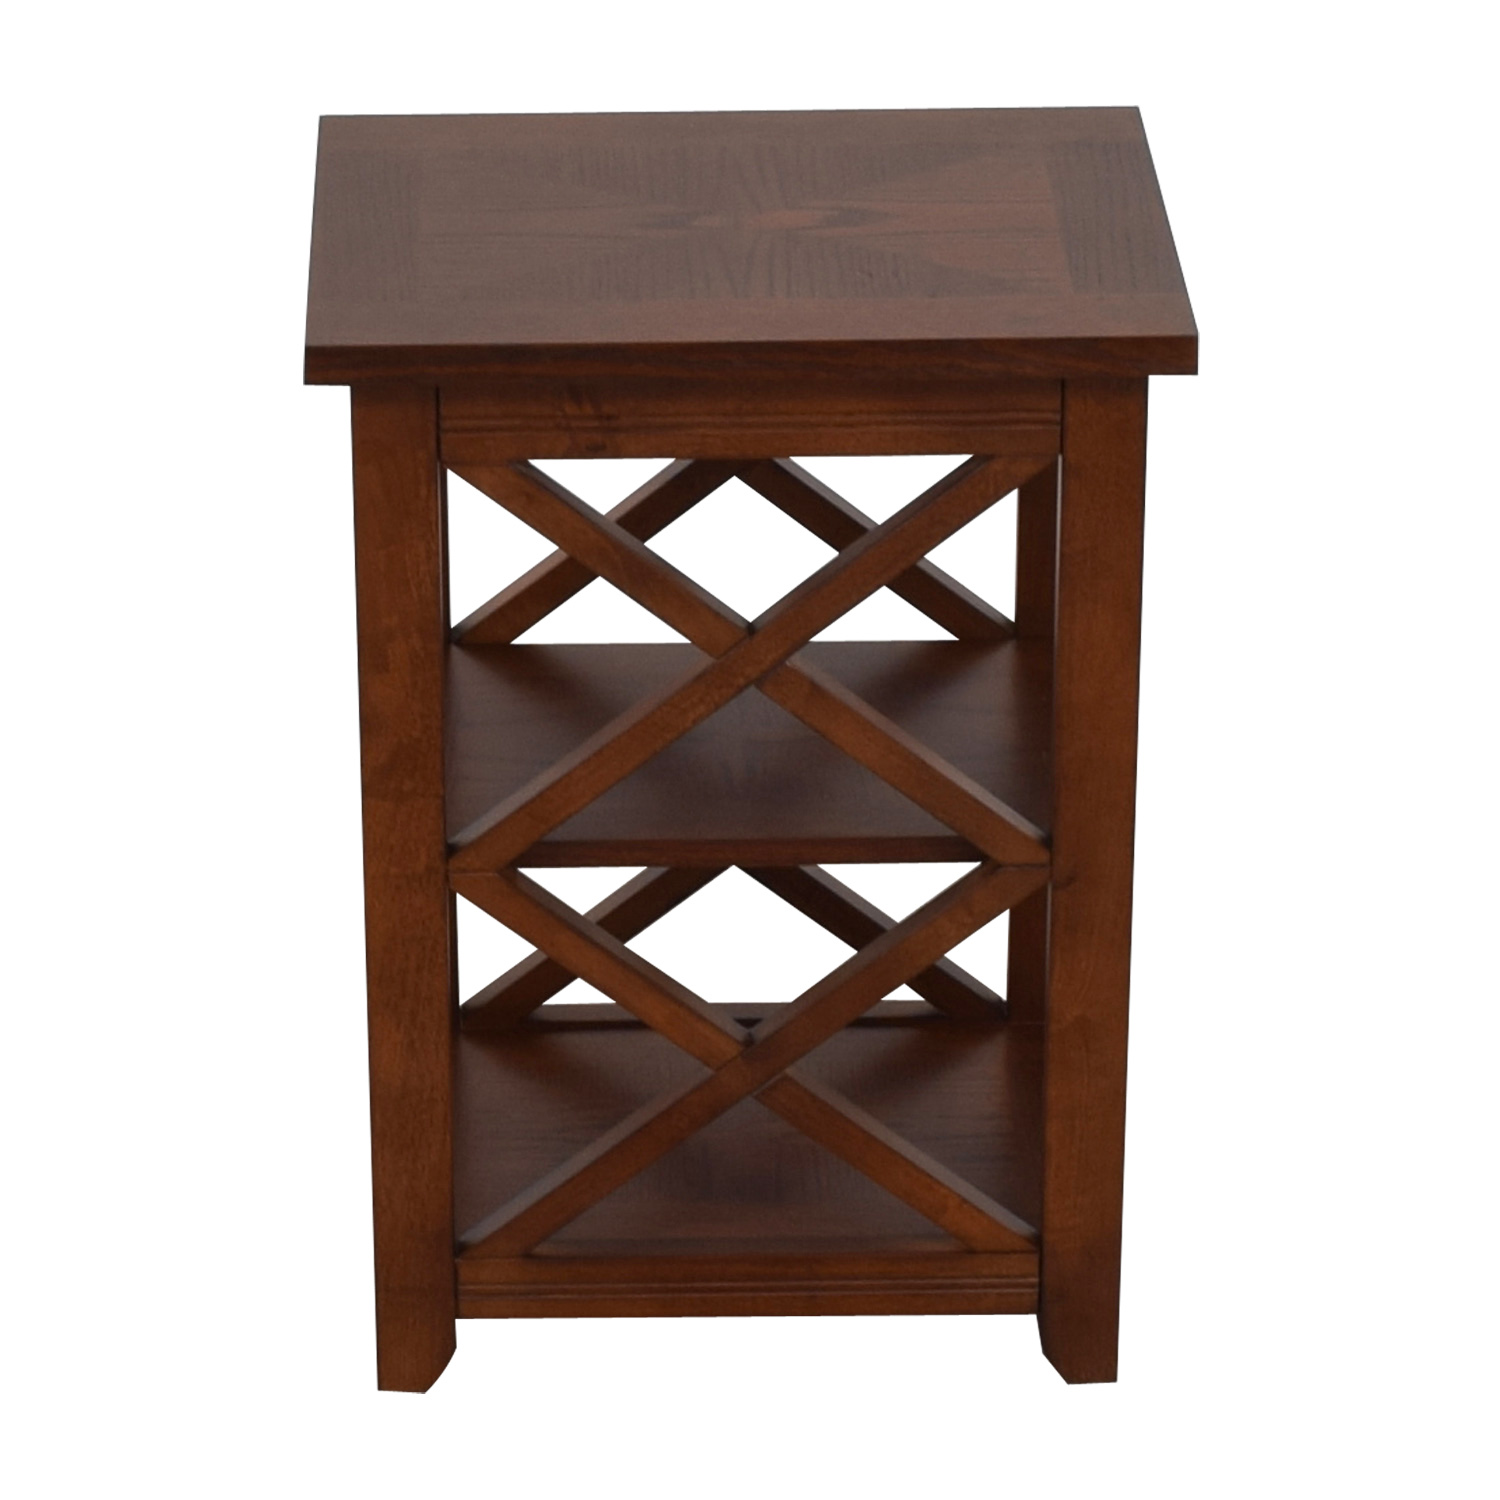 Raymour & Flanigan Raymour & Flanigan Tucson Side Table on sale